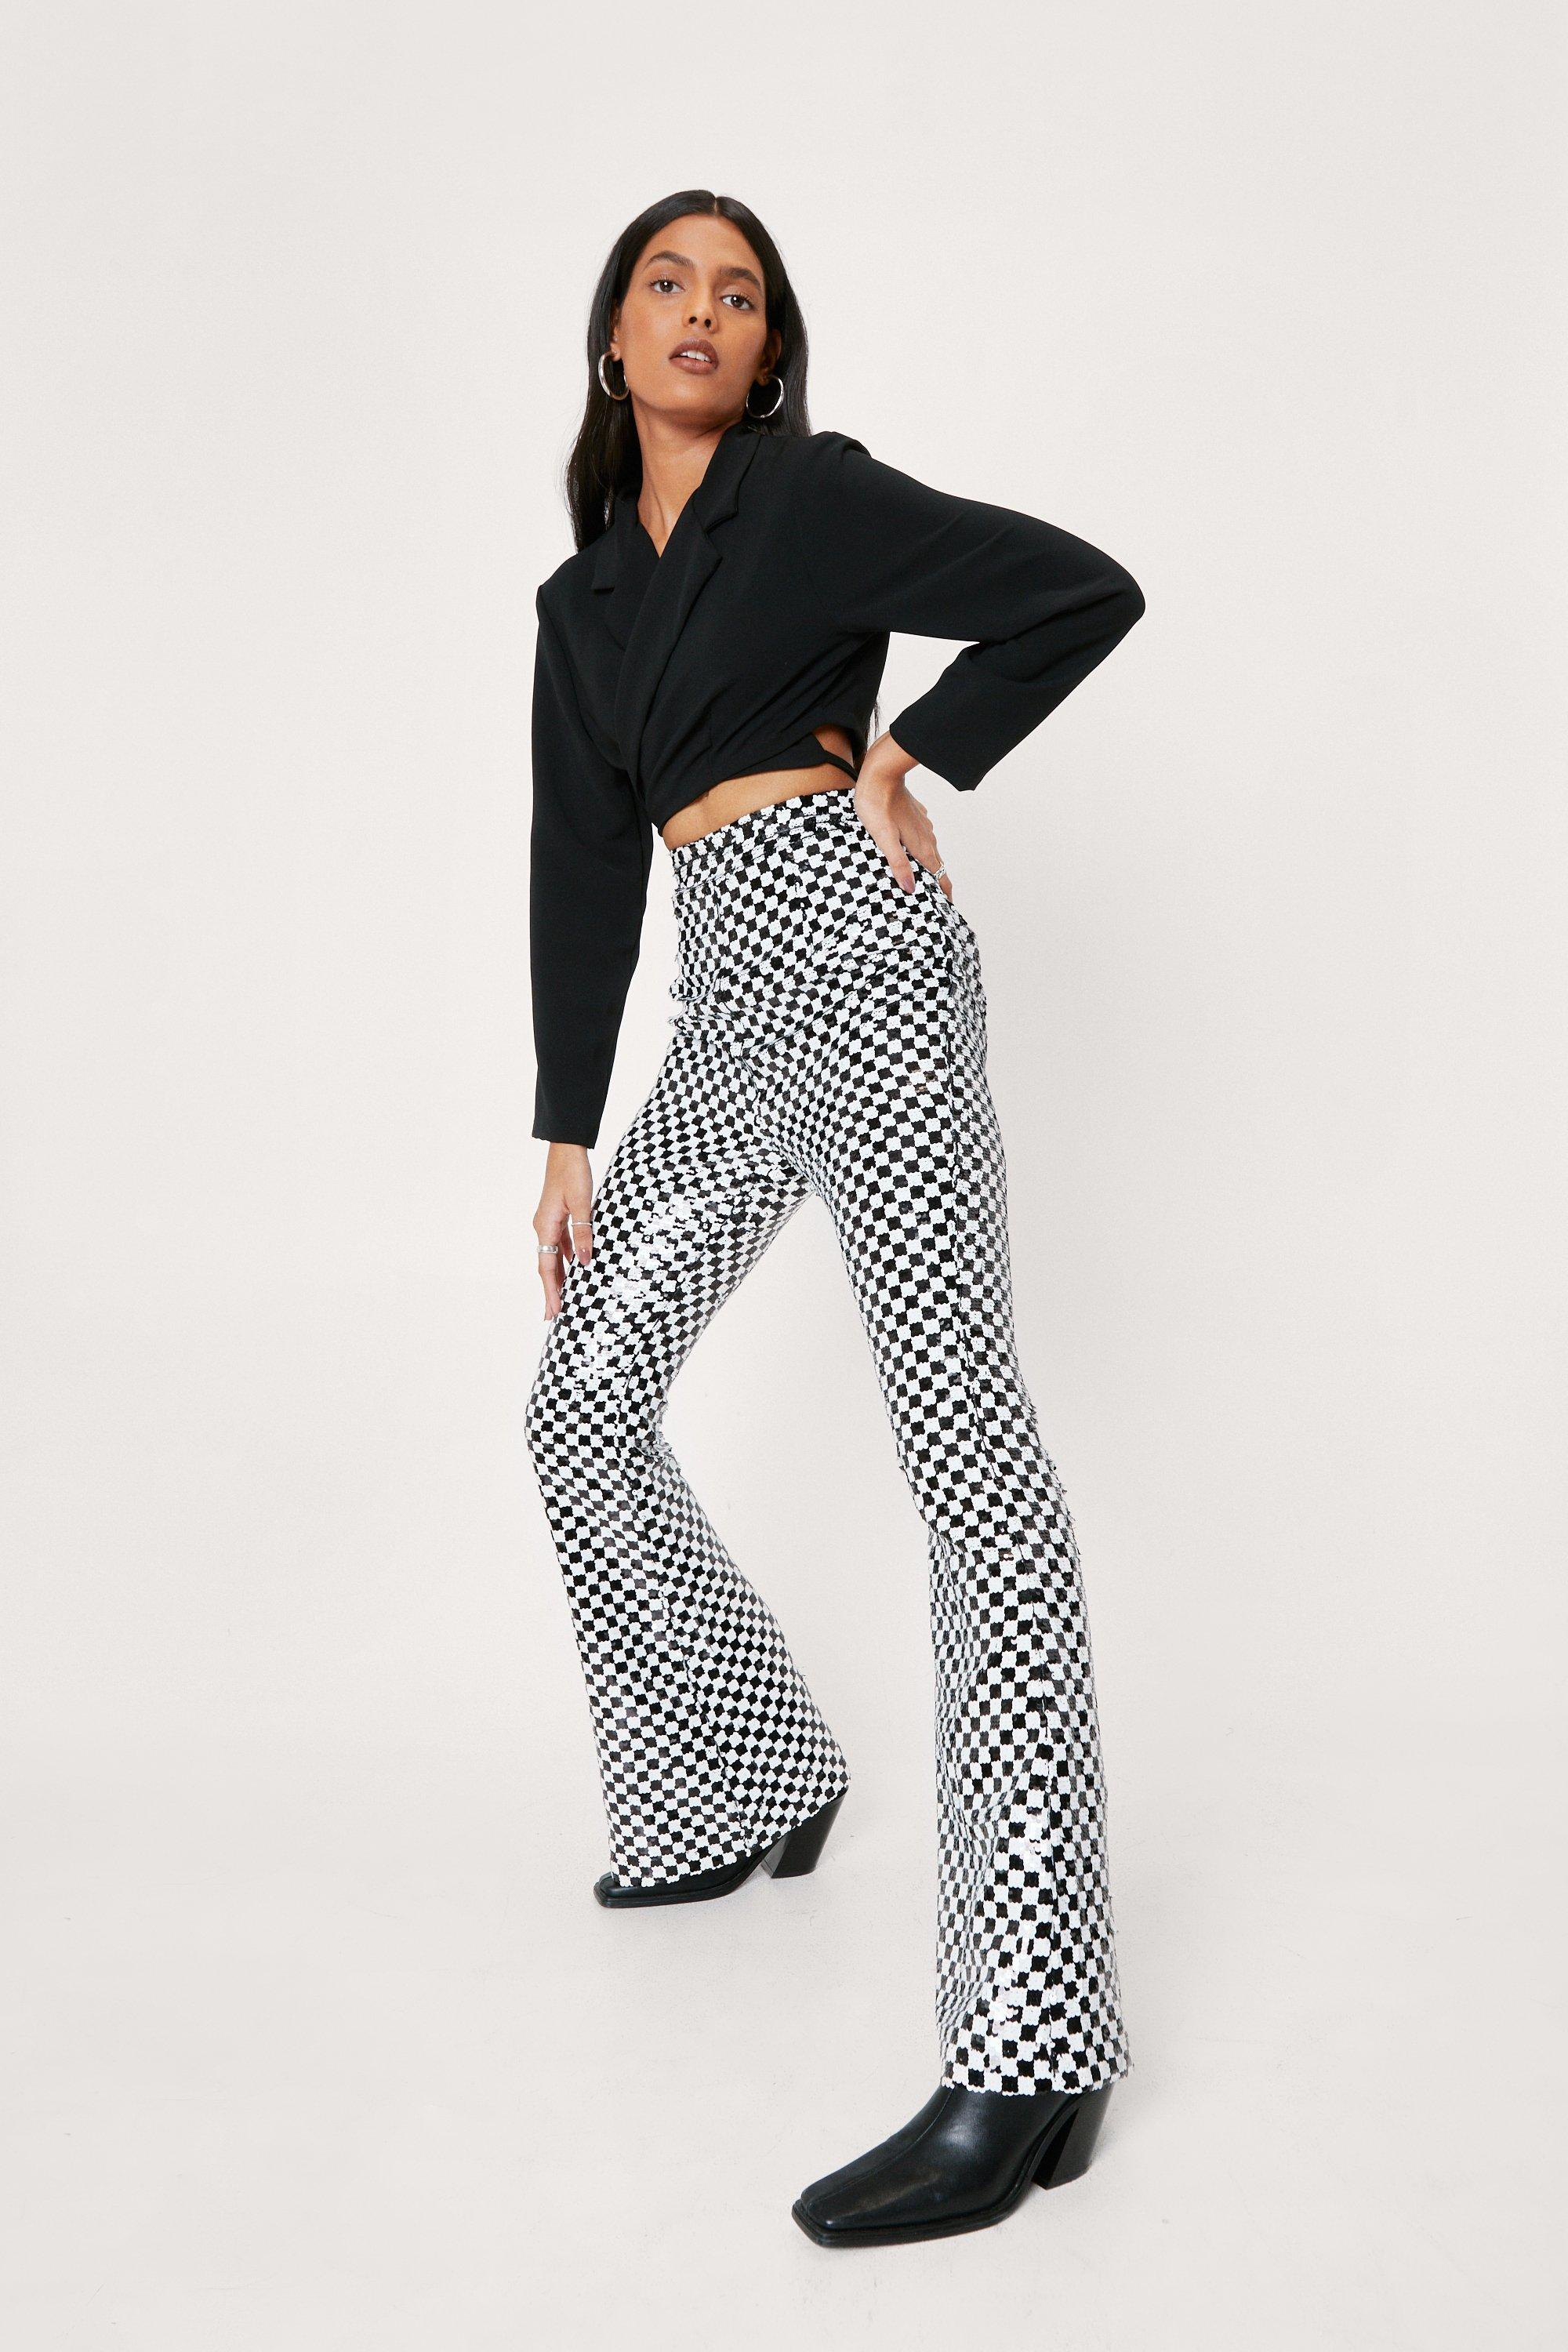 70s Clothes | Hippie Clothes & Outfits Womens Sequin Checkerboard Design Flare Pants - Mono - 10 $51.00 AT vintagedancer.com